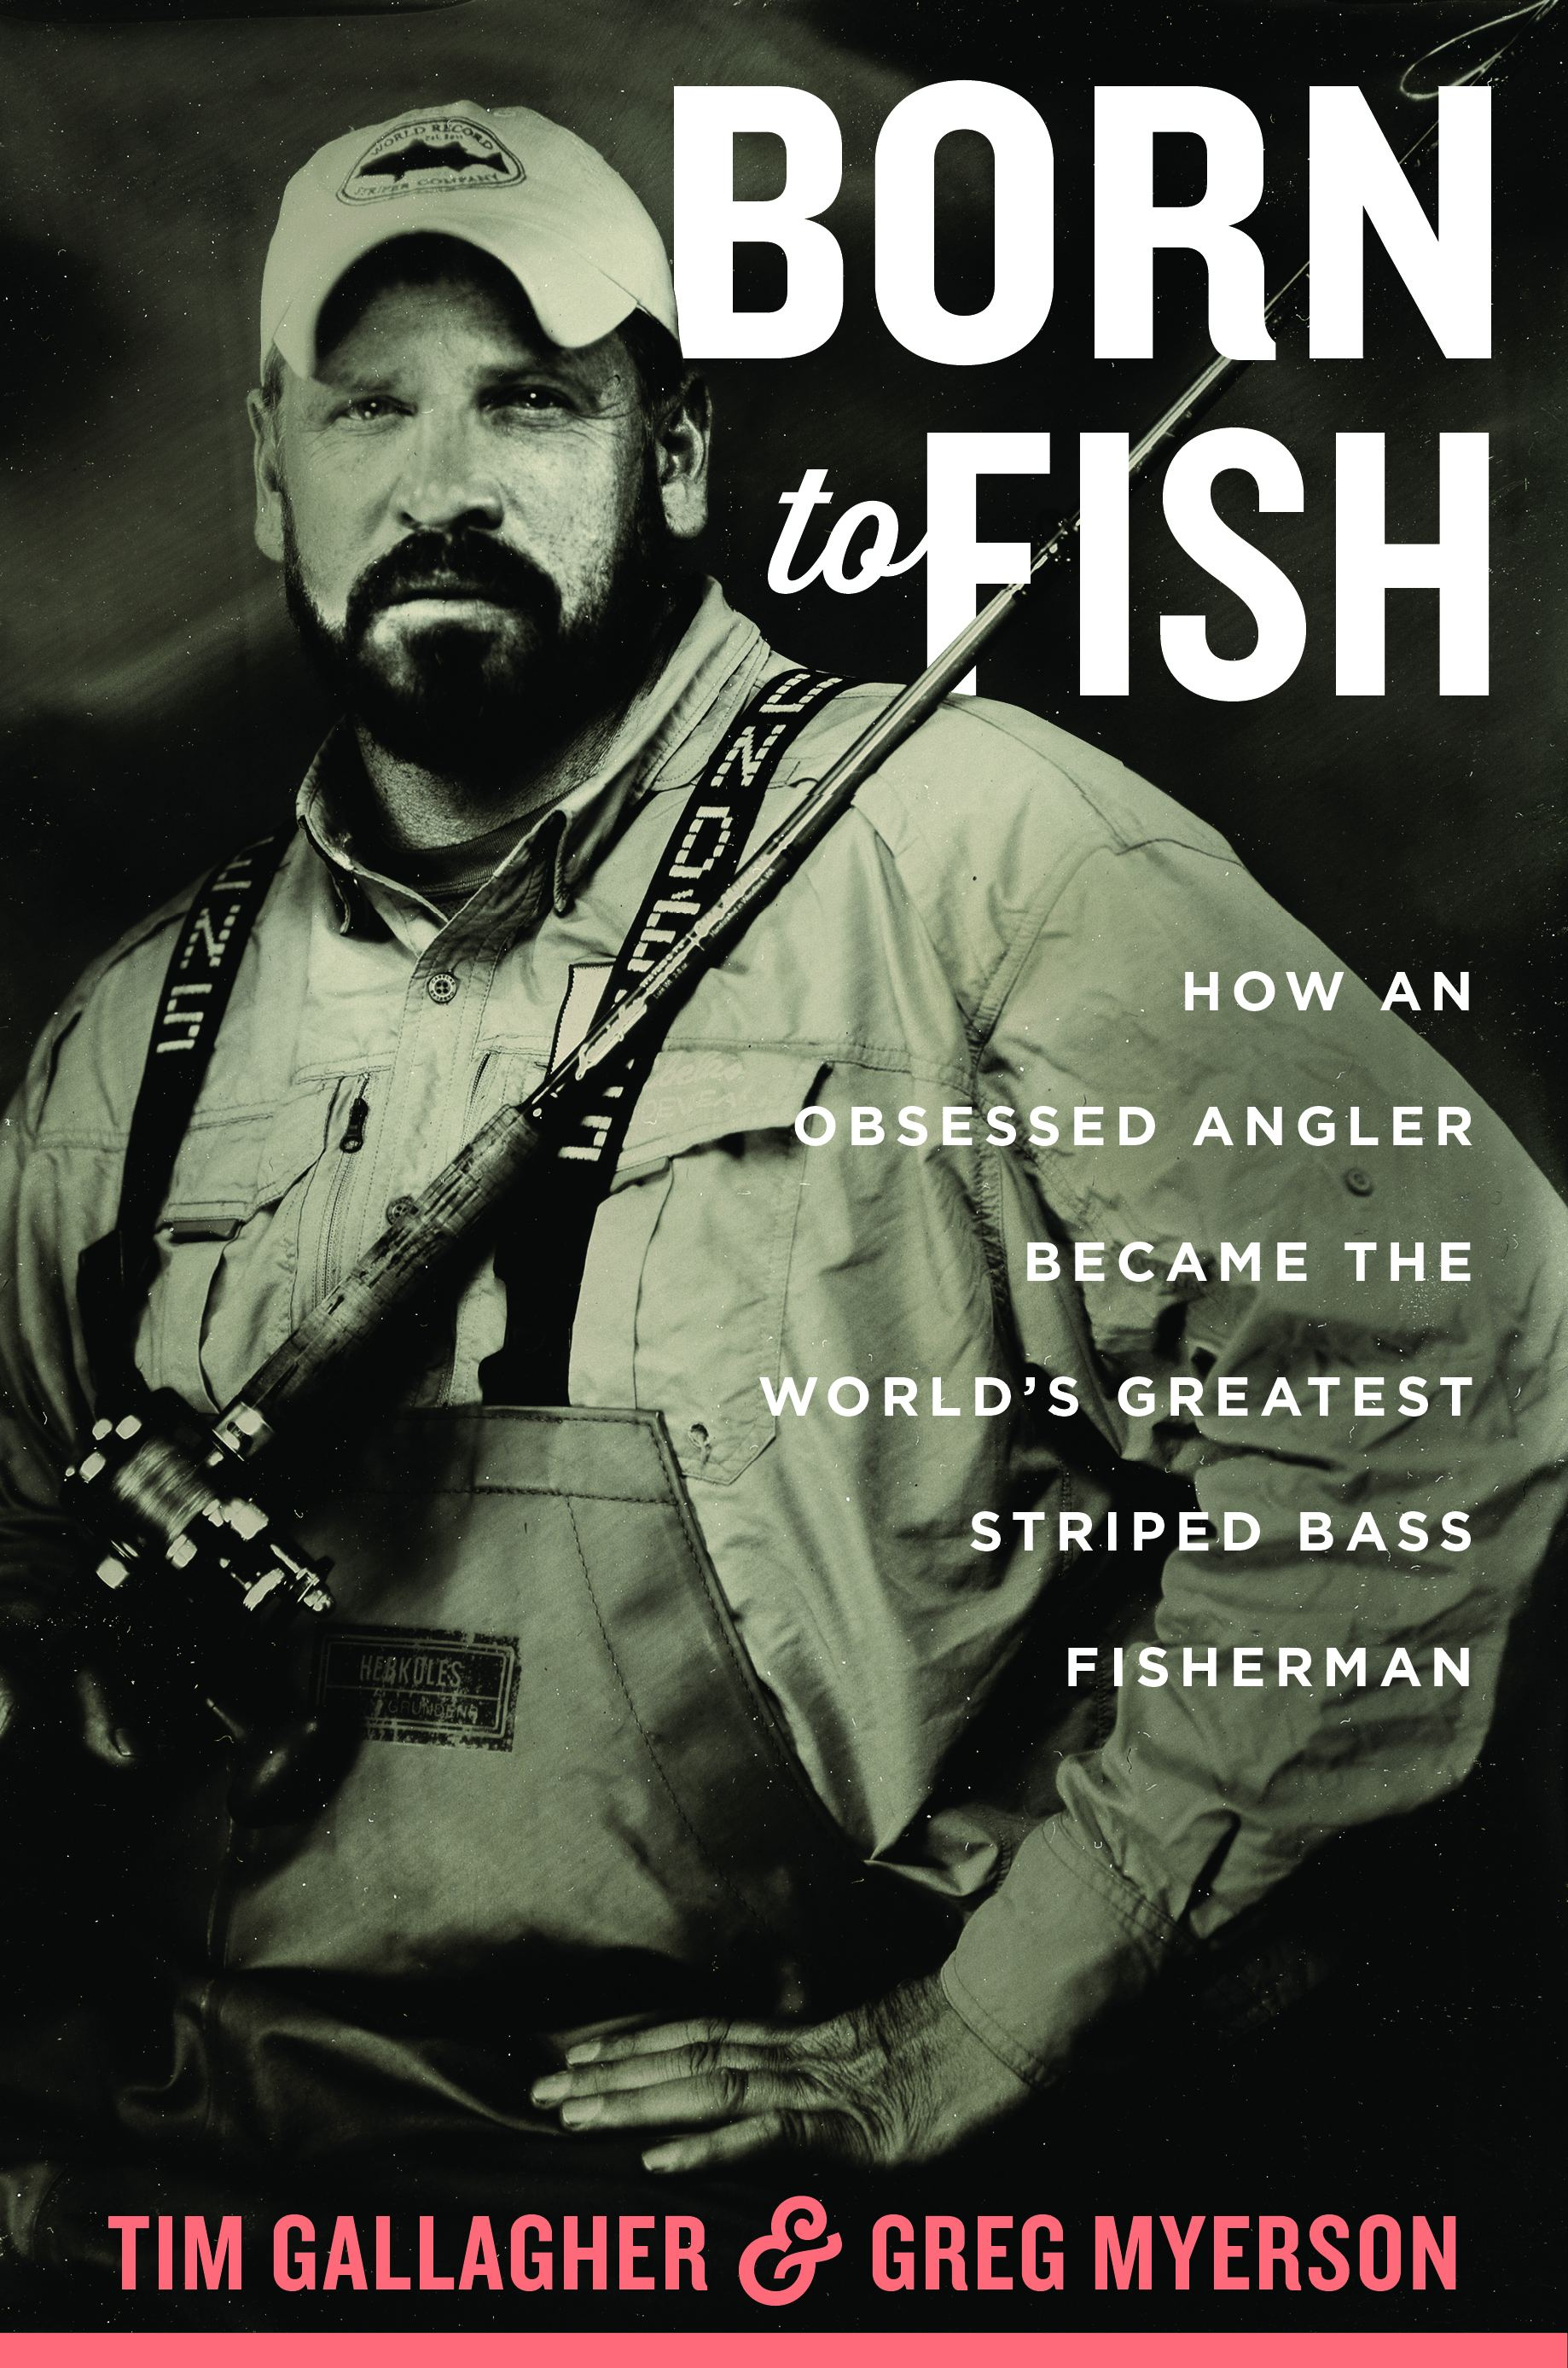 """Born to Fish: How an Obsessed Angler Became the World's Greatest Striped Bass Fisherman"" by Tim Gallagher & Greg Myerson"